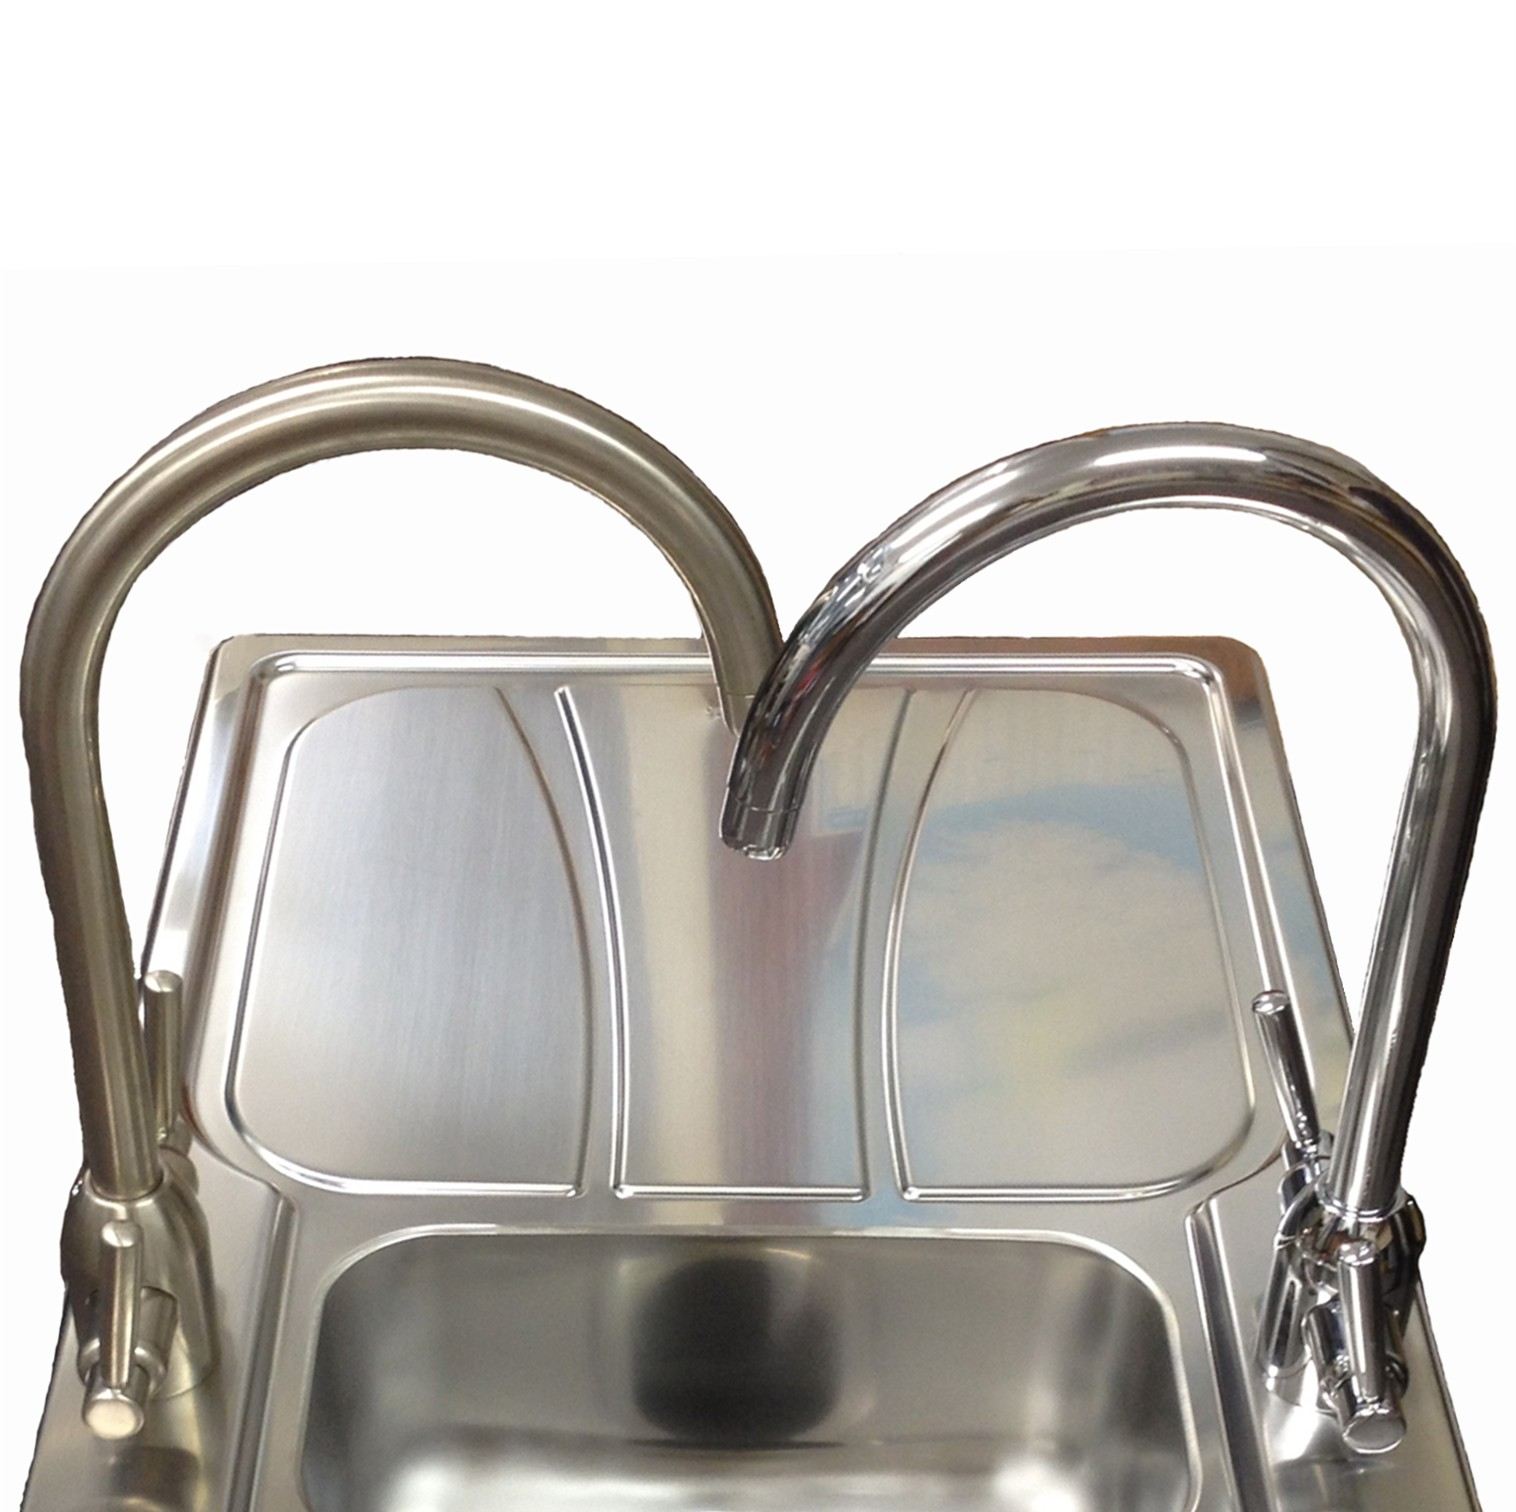 Brushed Or Chrome Kitchen Taps Stainless Steel Kitchen